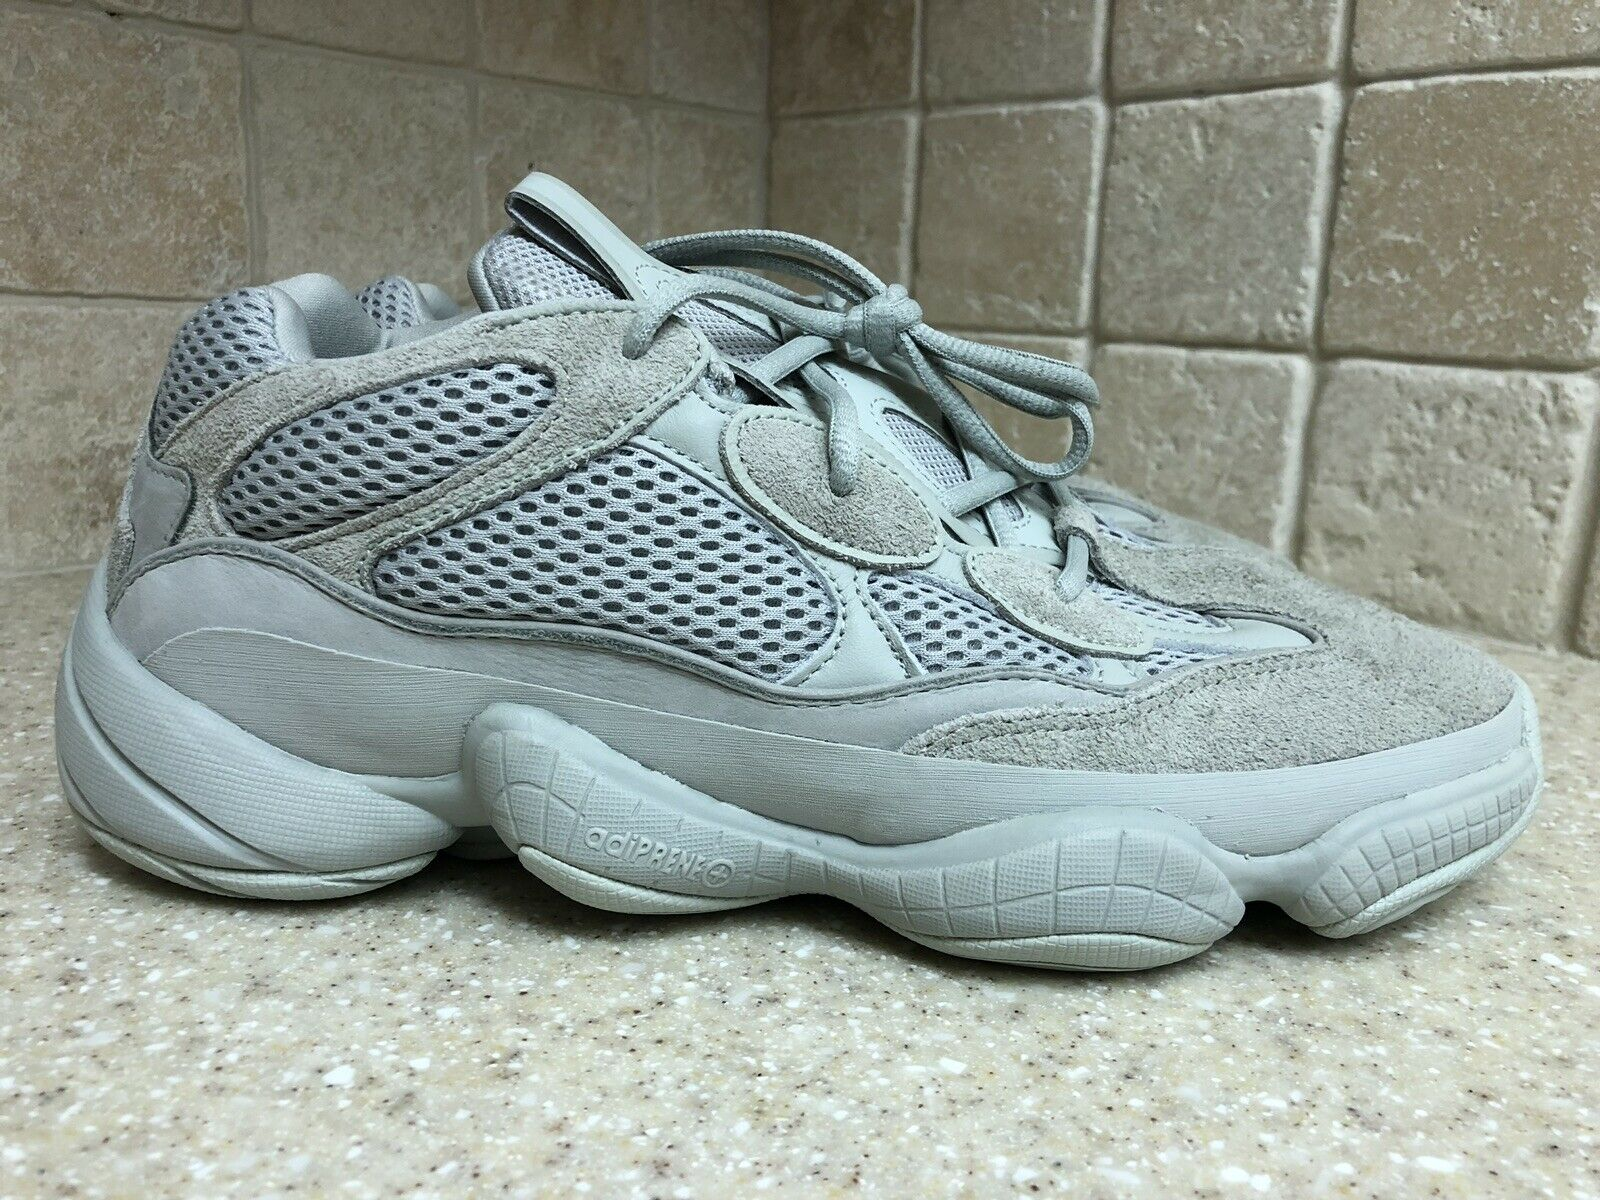 NEW Adidas Yeezy Boost 500 Salt Desert EE7287 Kanye West Size 10.5 Grey SOLD OUT